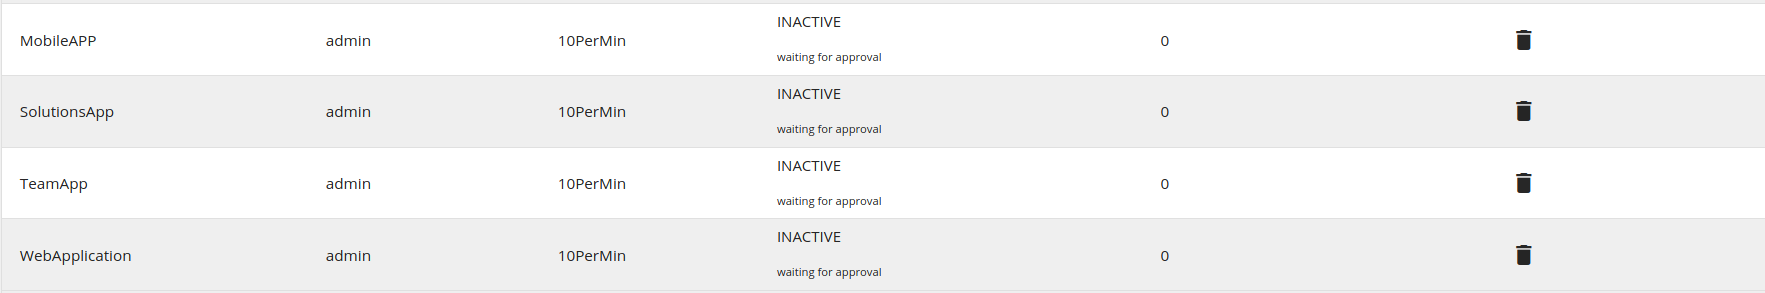 Application status is INACTIVE - Waiting for approval